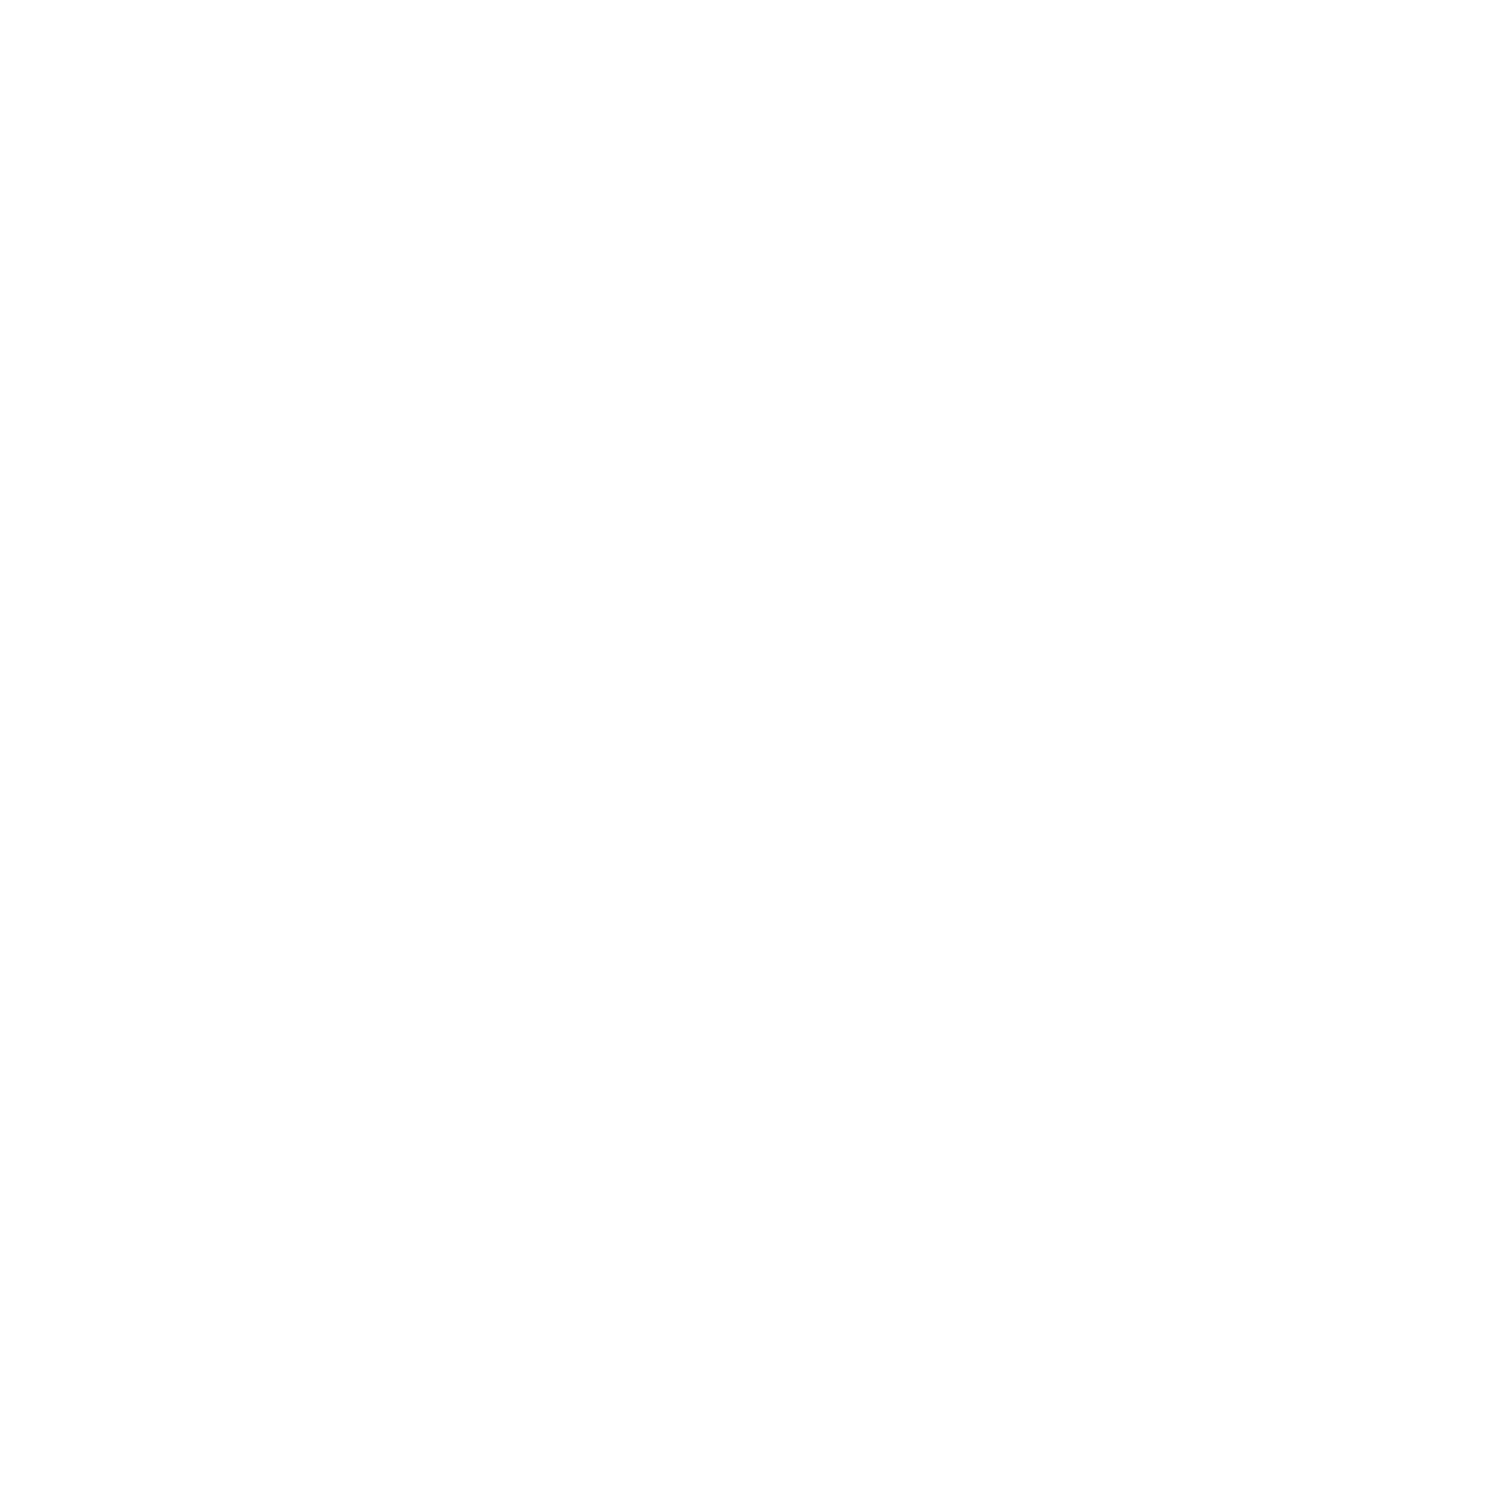 Calvary Chapel Moreno Valley